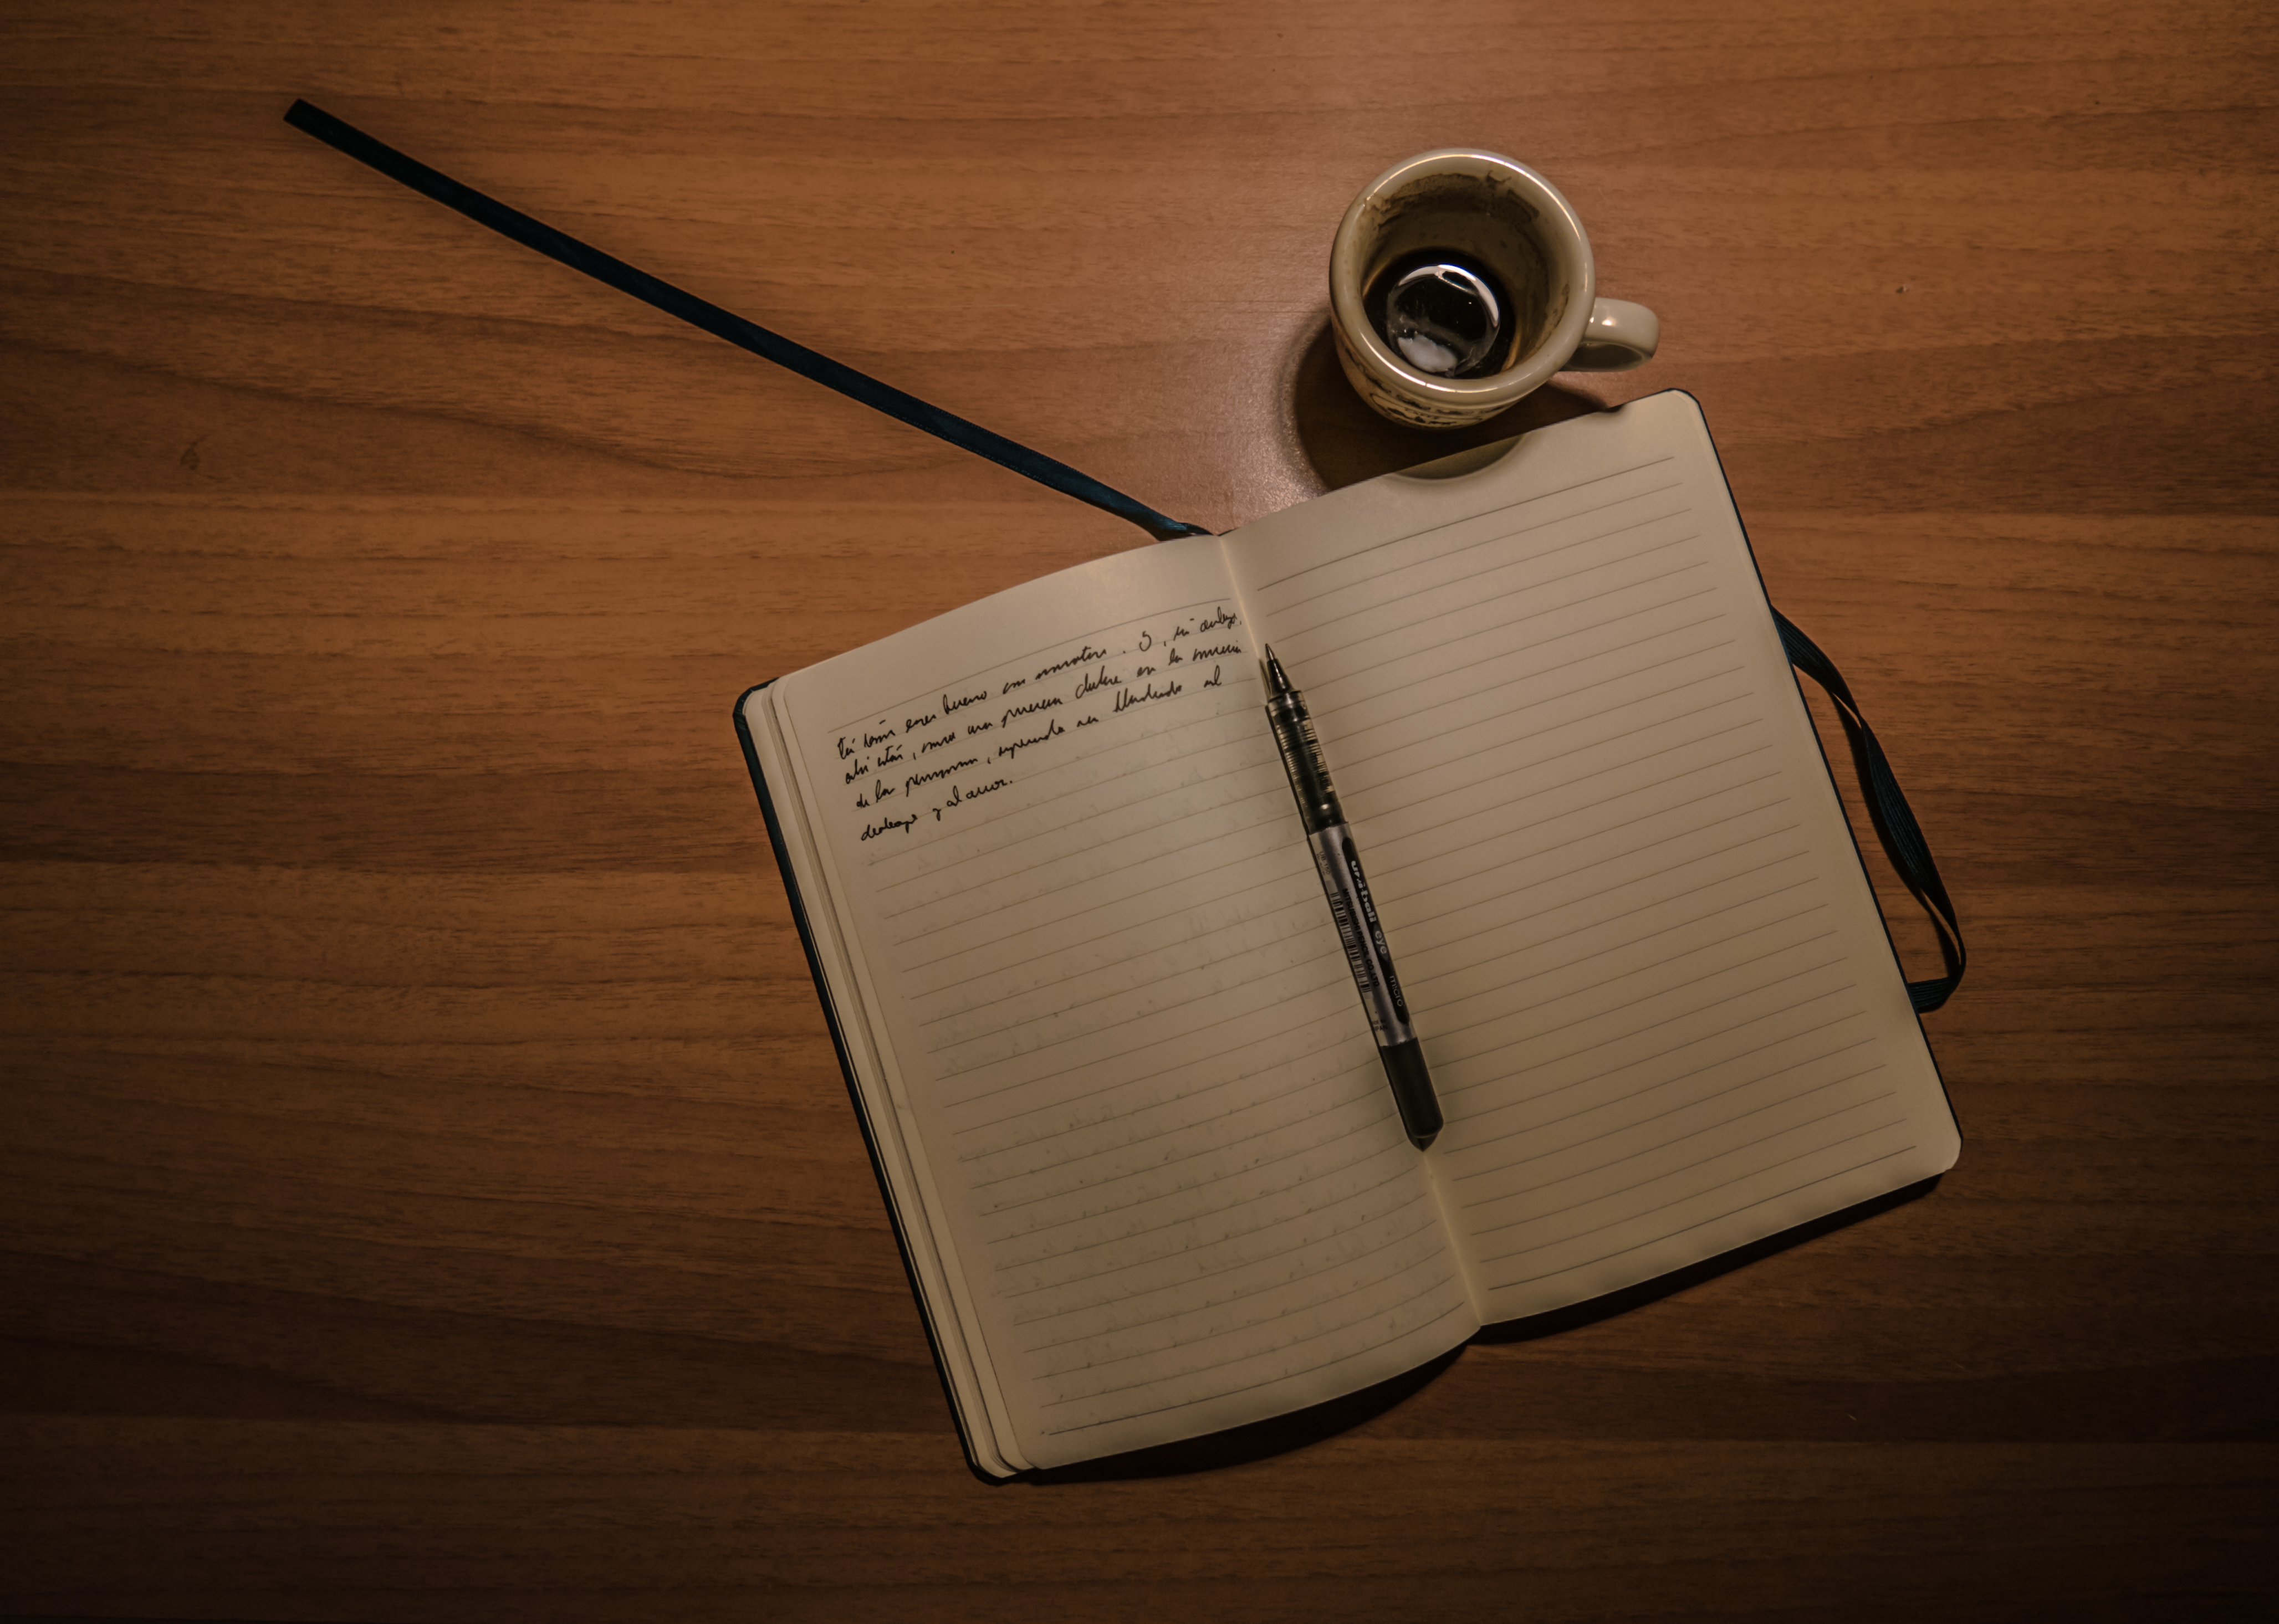 Black And White Phone Wallpaper Blank Paper With Pen And Coffee Cup On Wood Table 183 Free